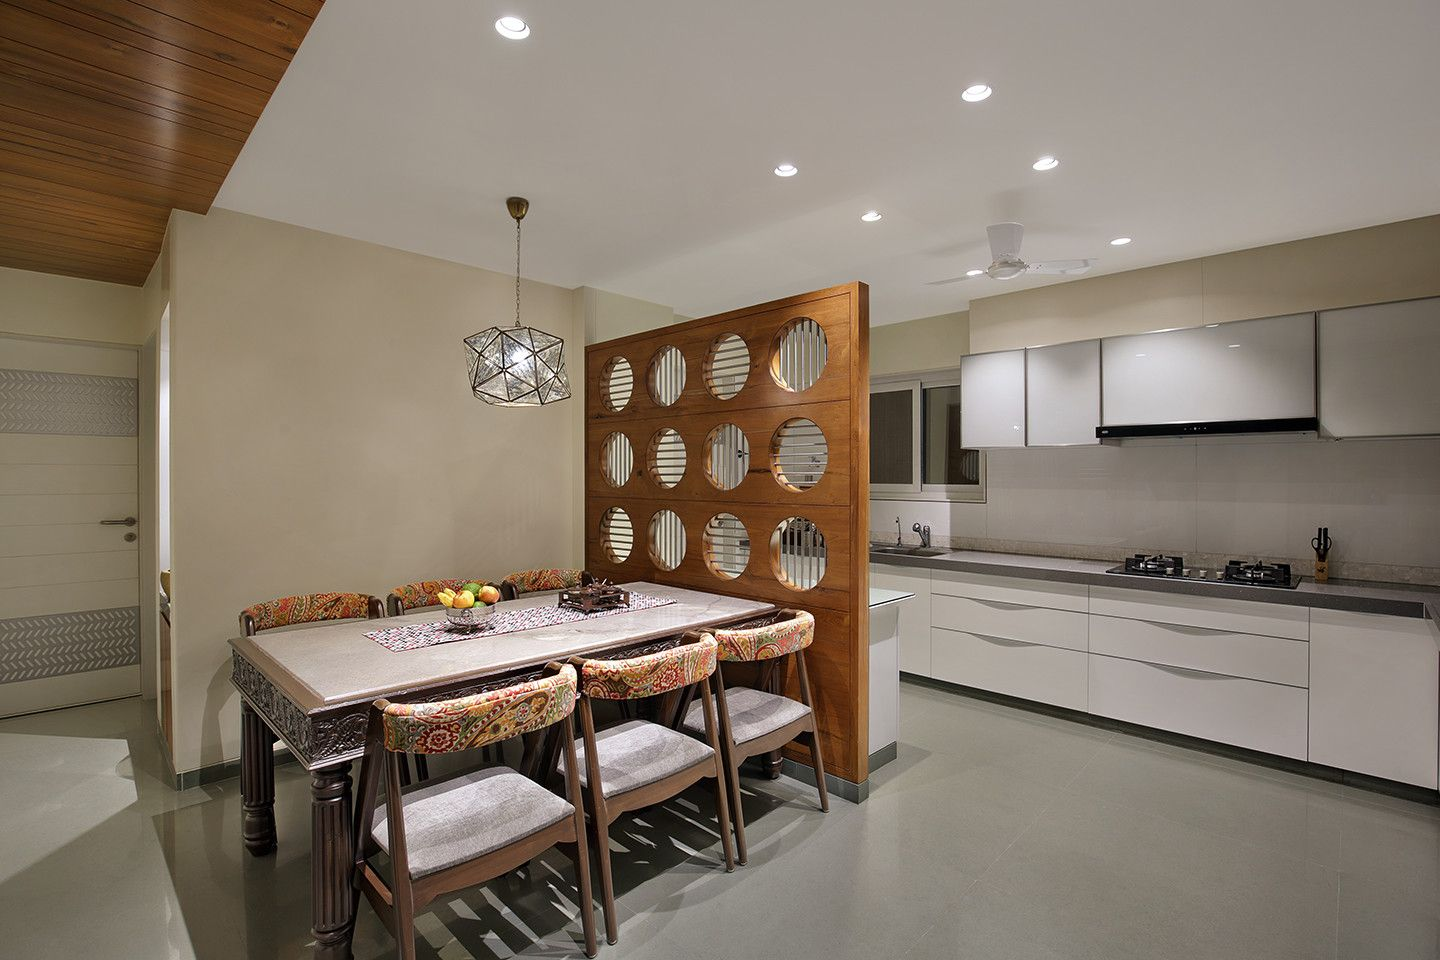 Pin on Dining Room Decor Ideas - India